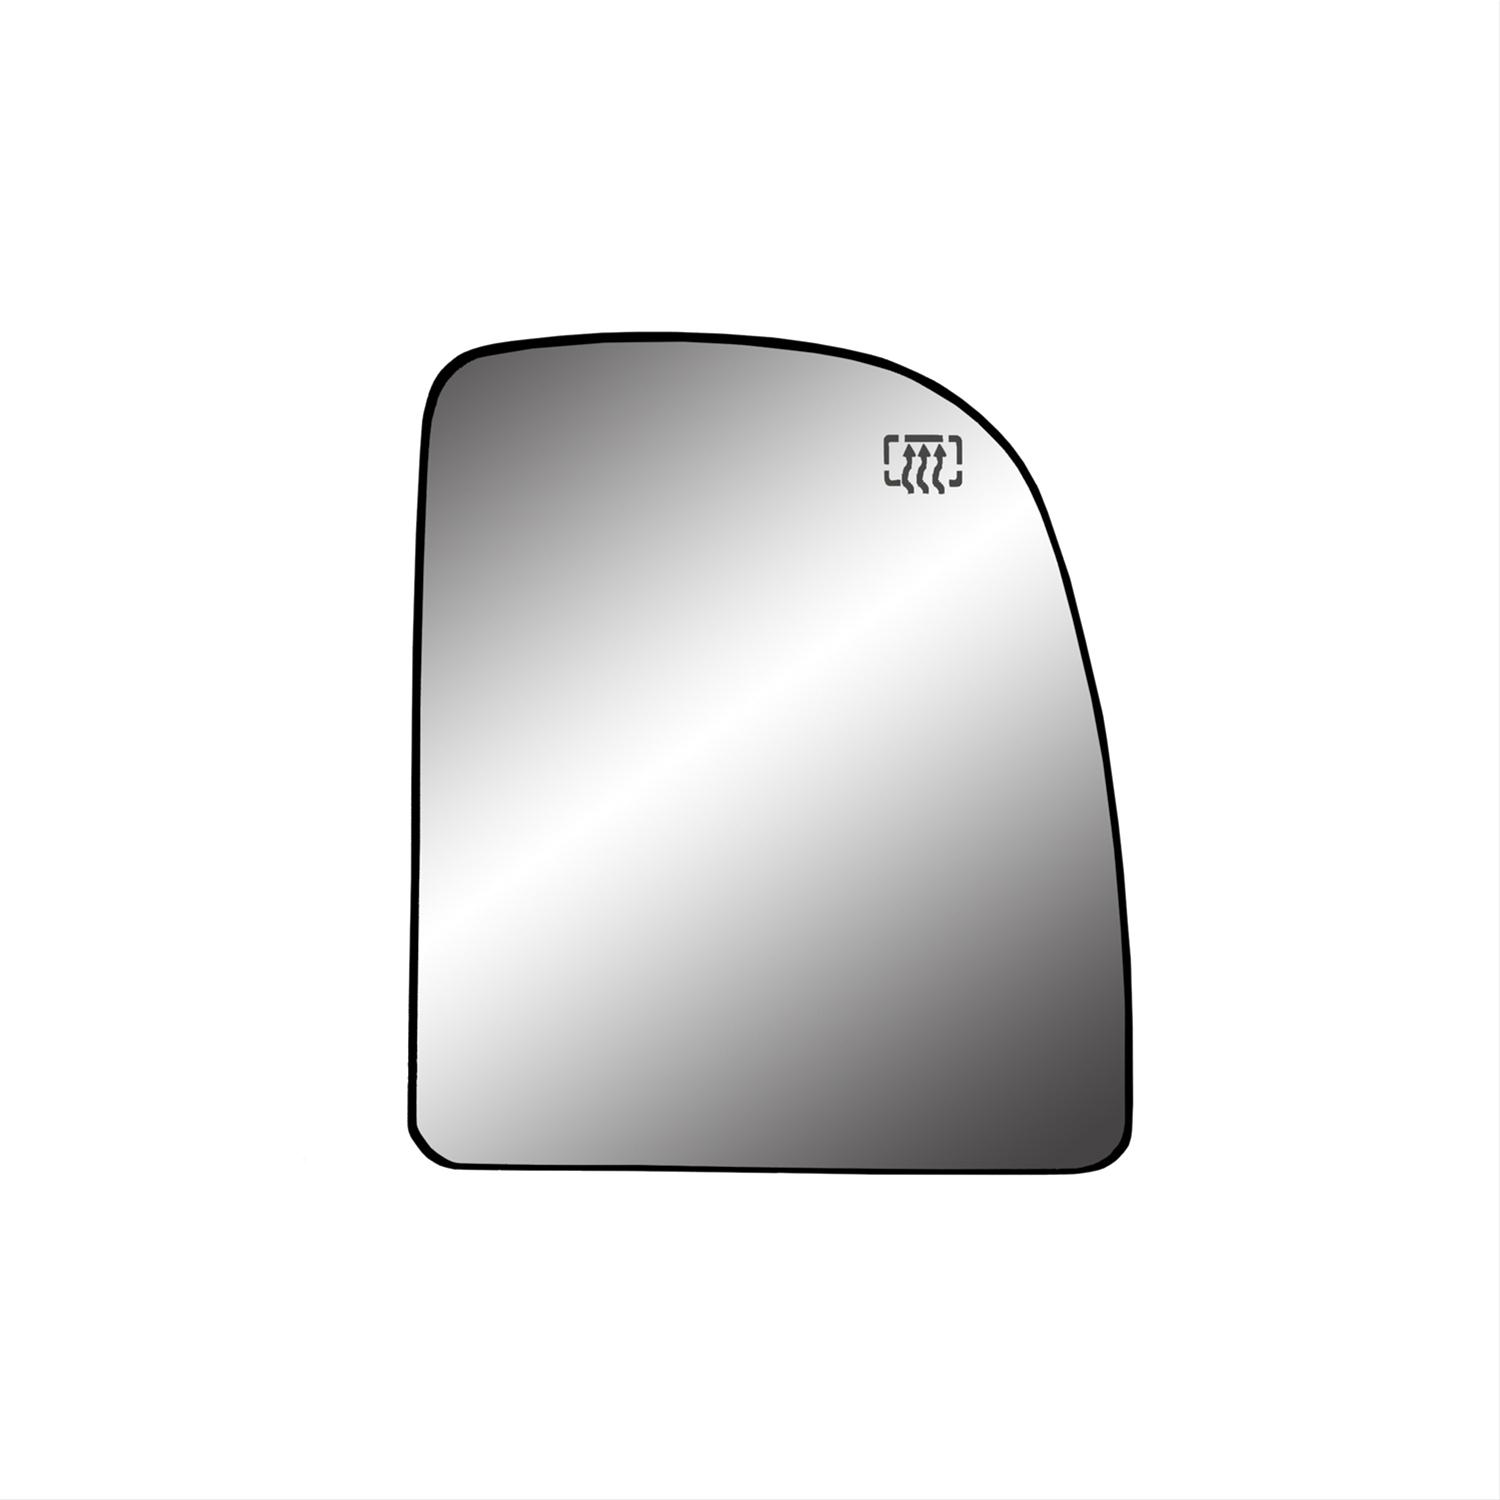 K source replacement mirror glass 30237 ebay for Mirror source